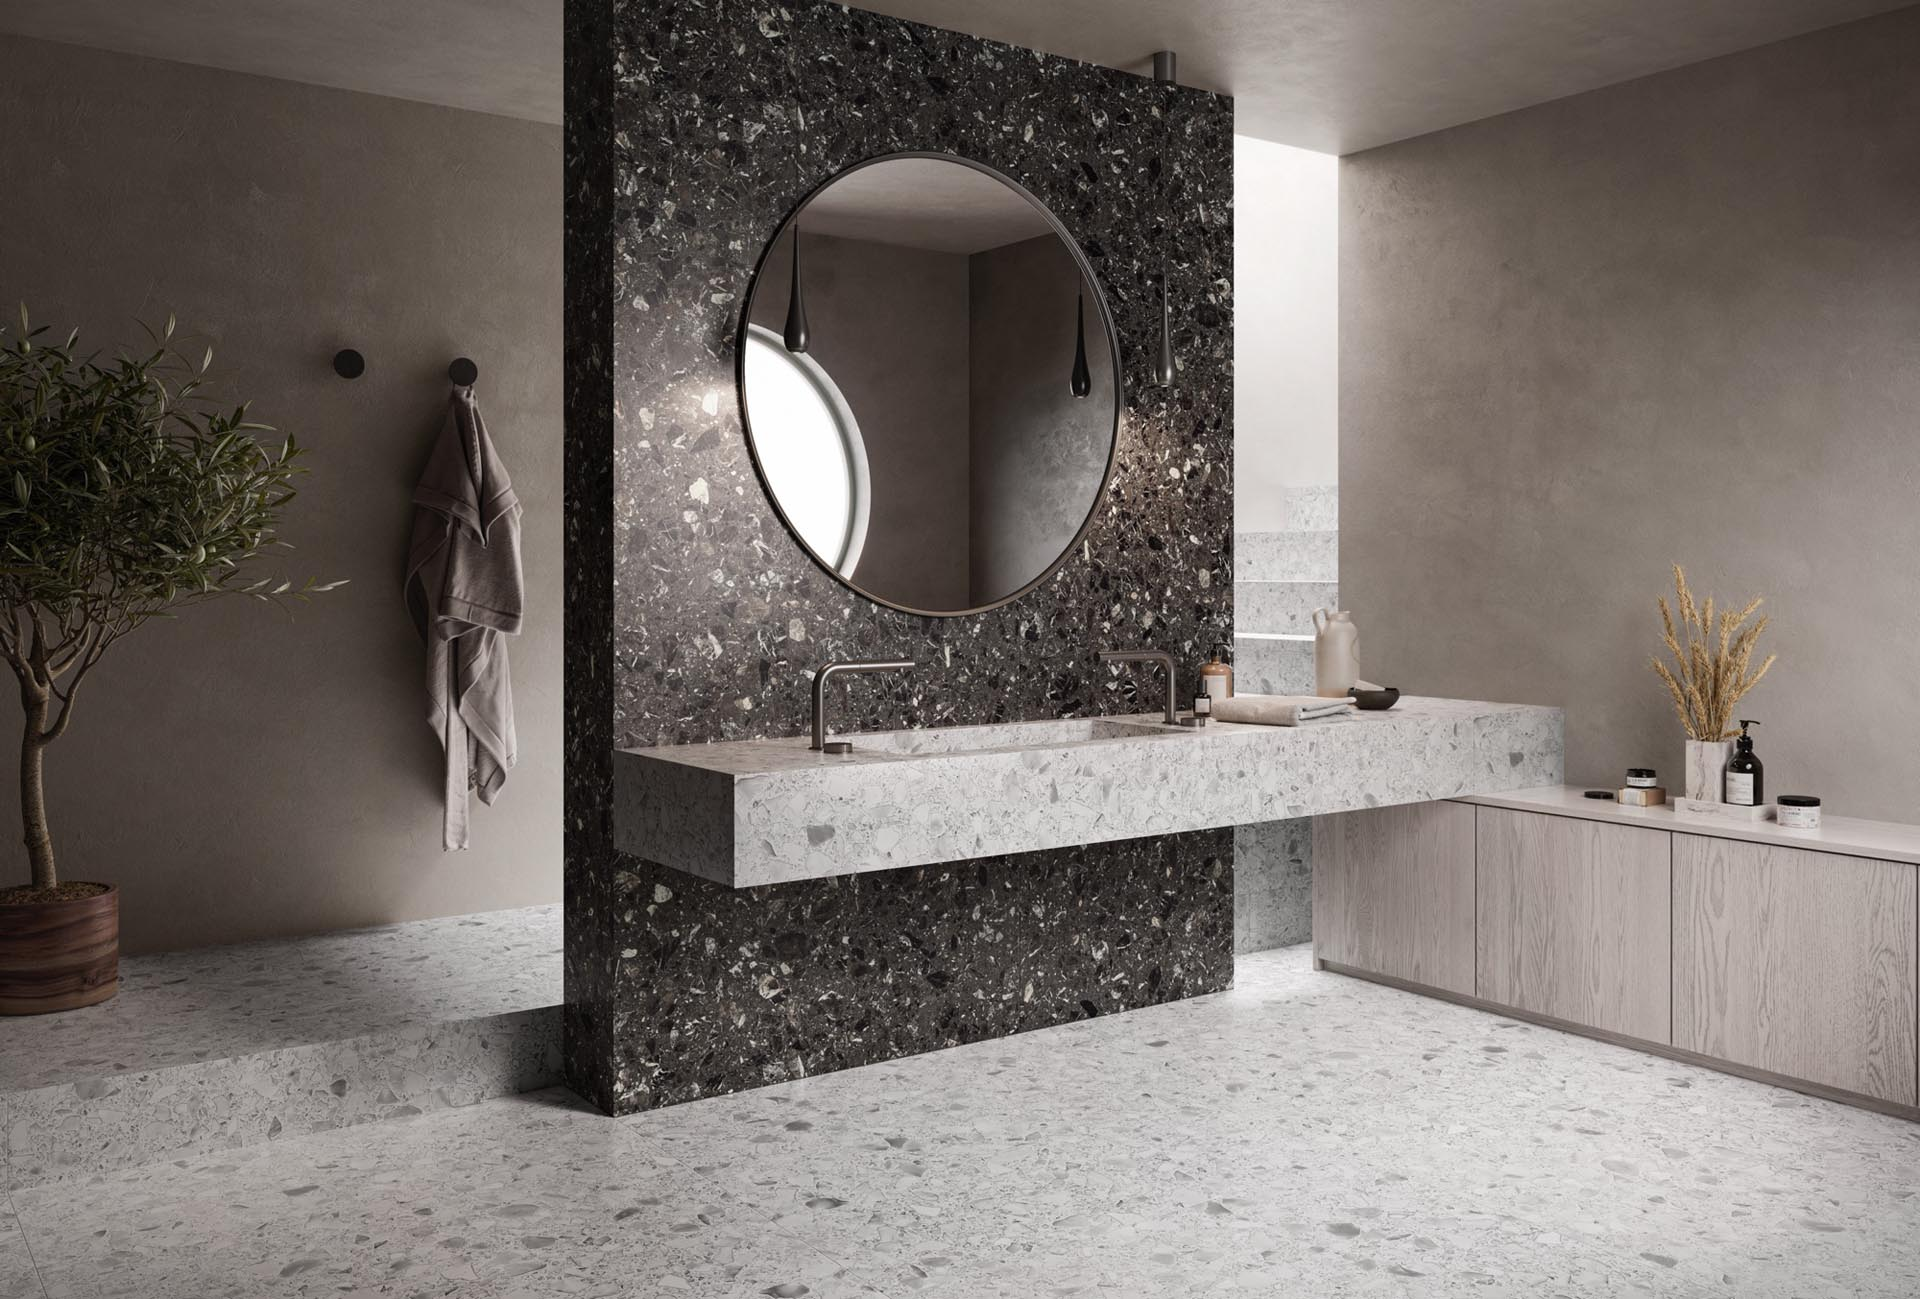 Wall and floor tiles with a confetti-like appearance.